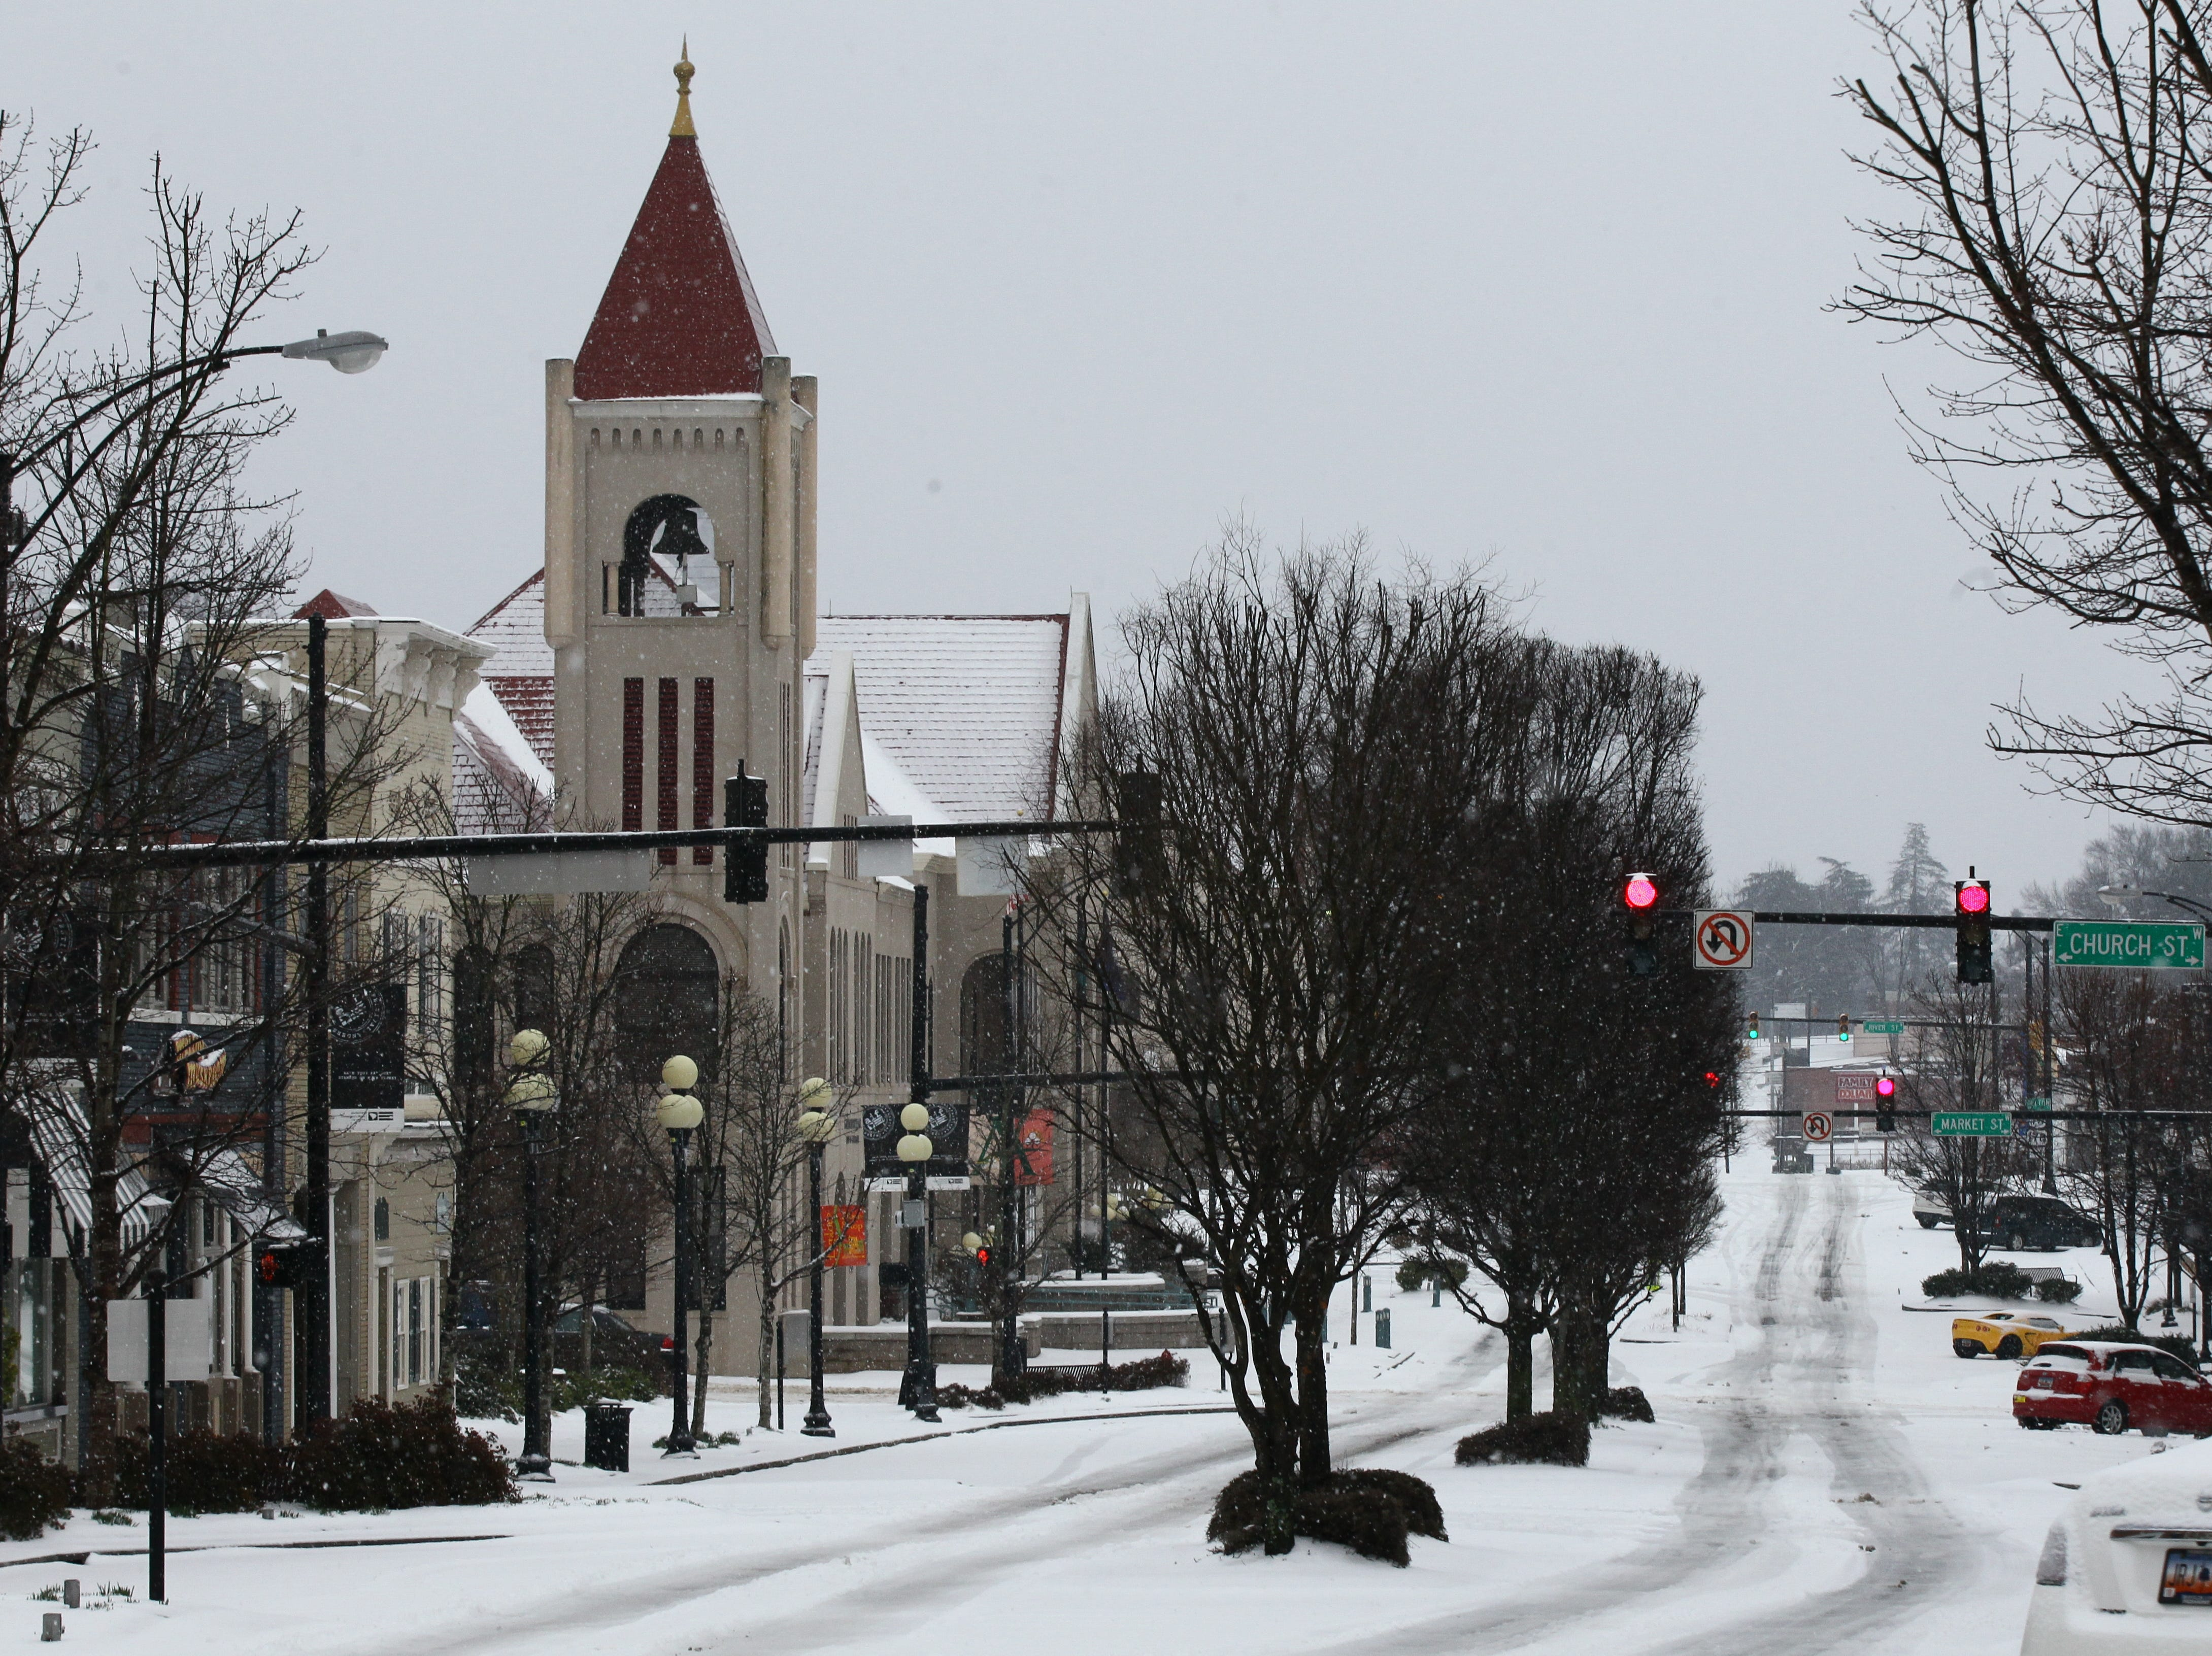 Snow covers South Main Street in view of city hall during the first snow of 2014.